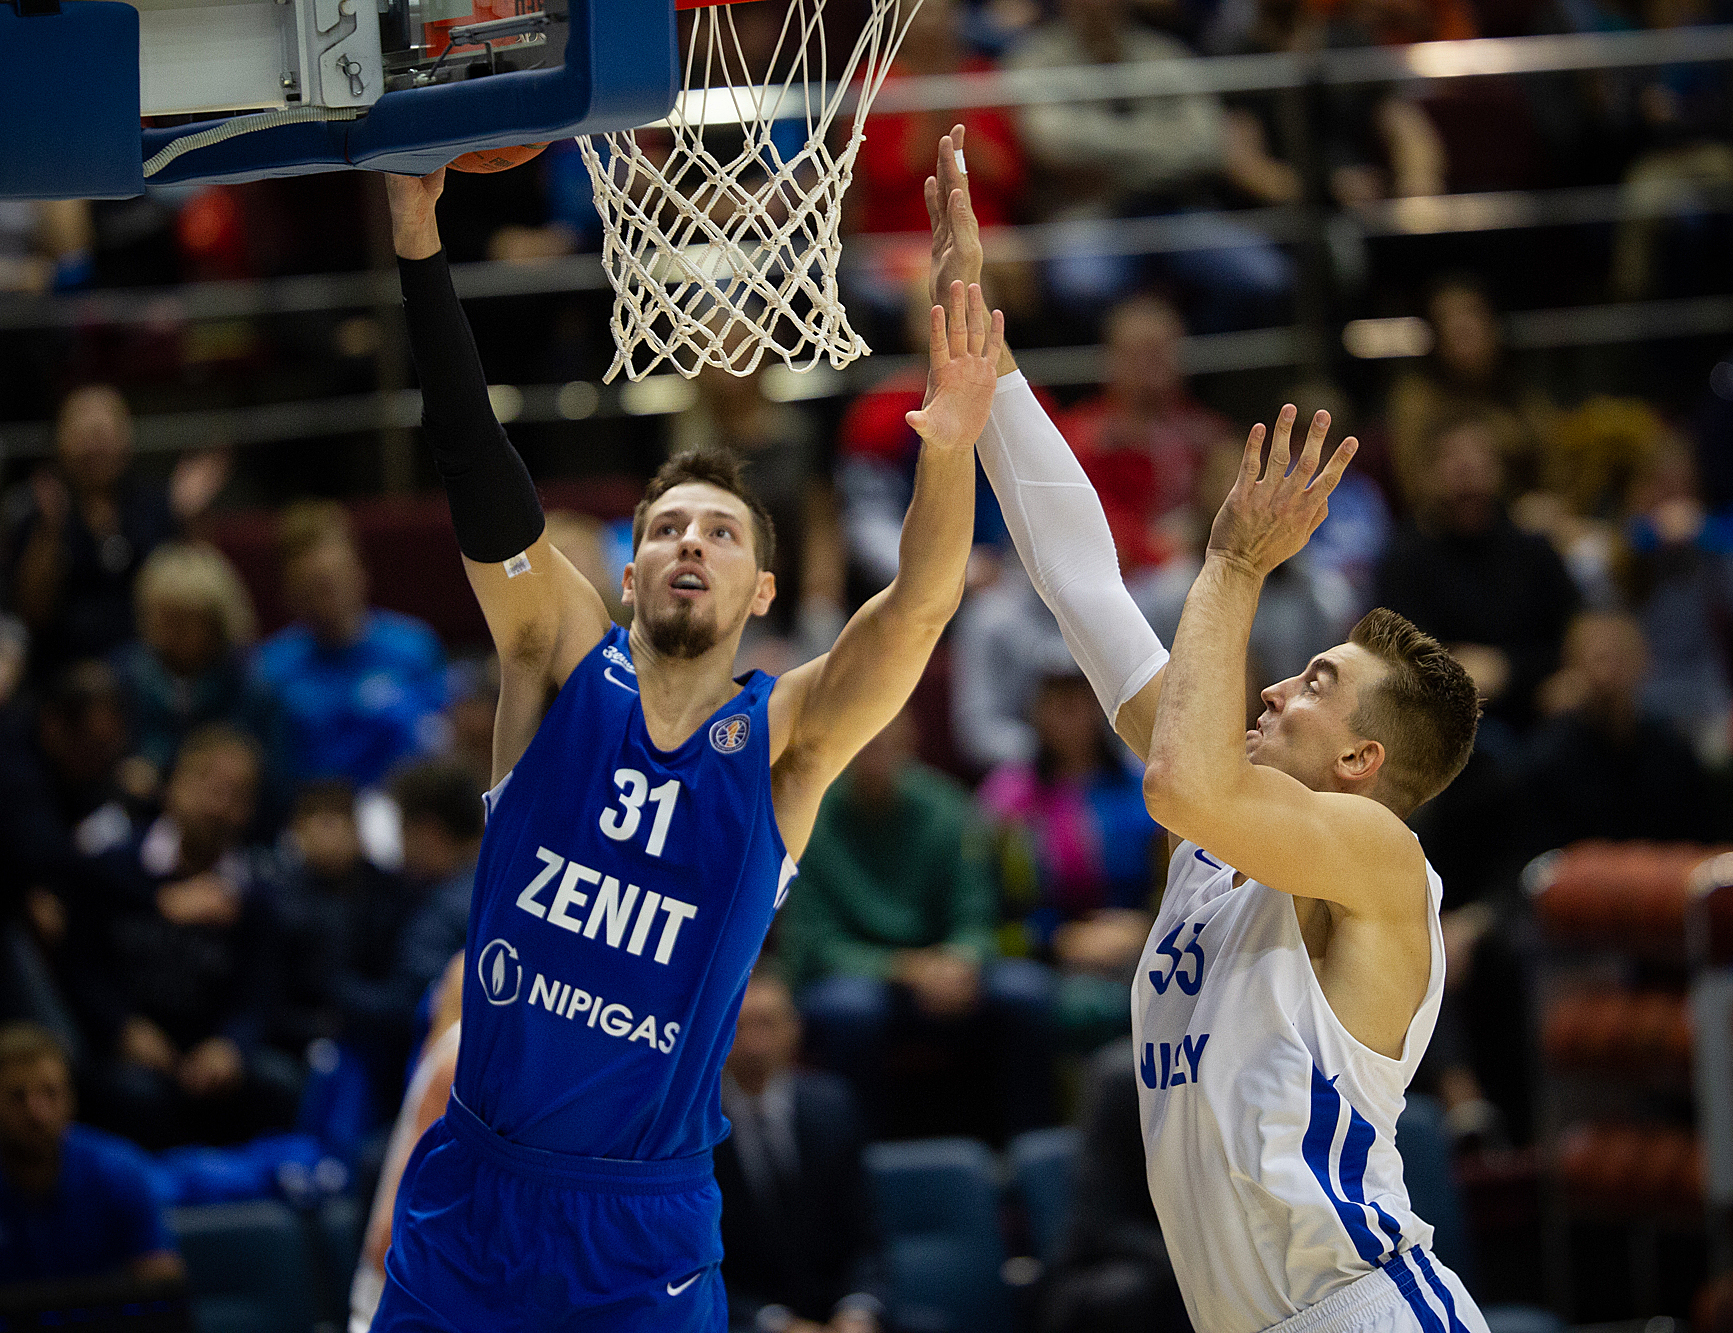 Zenits Stomps Enisey